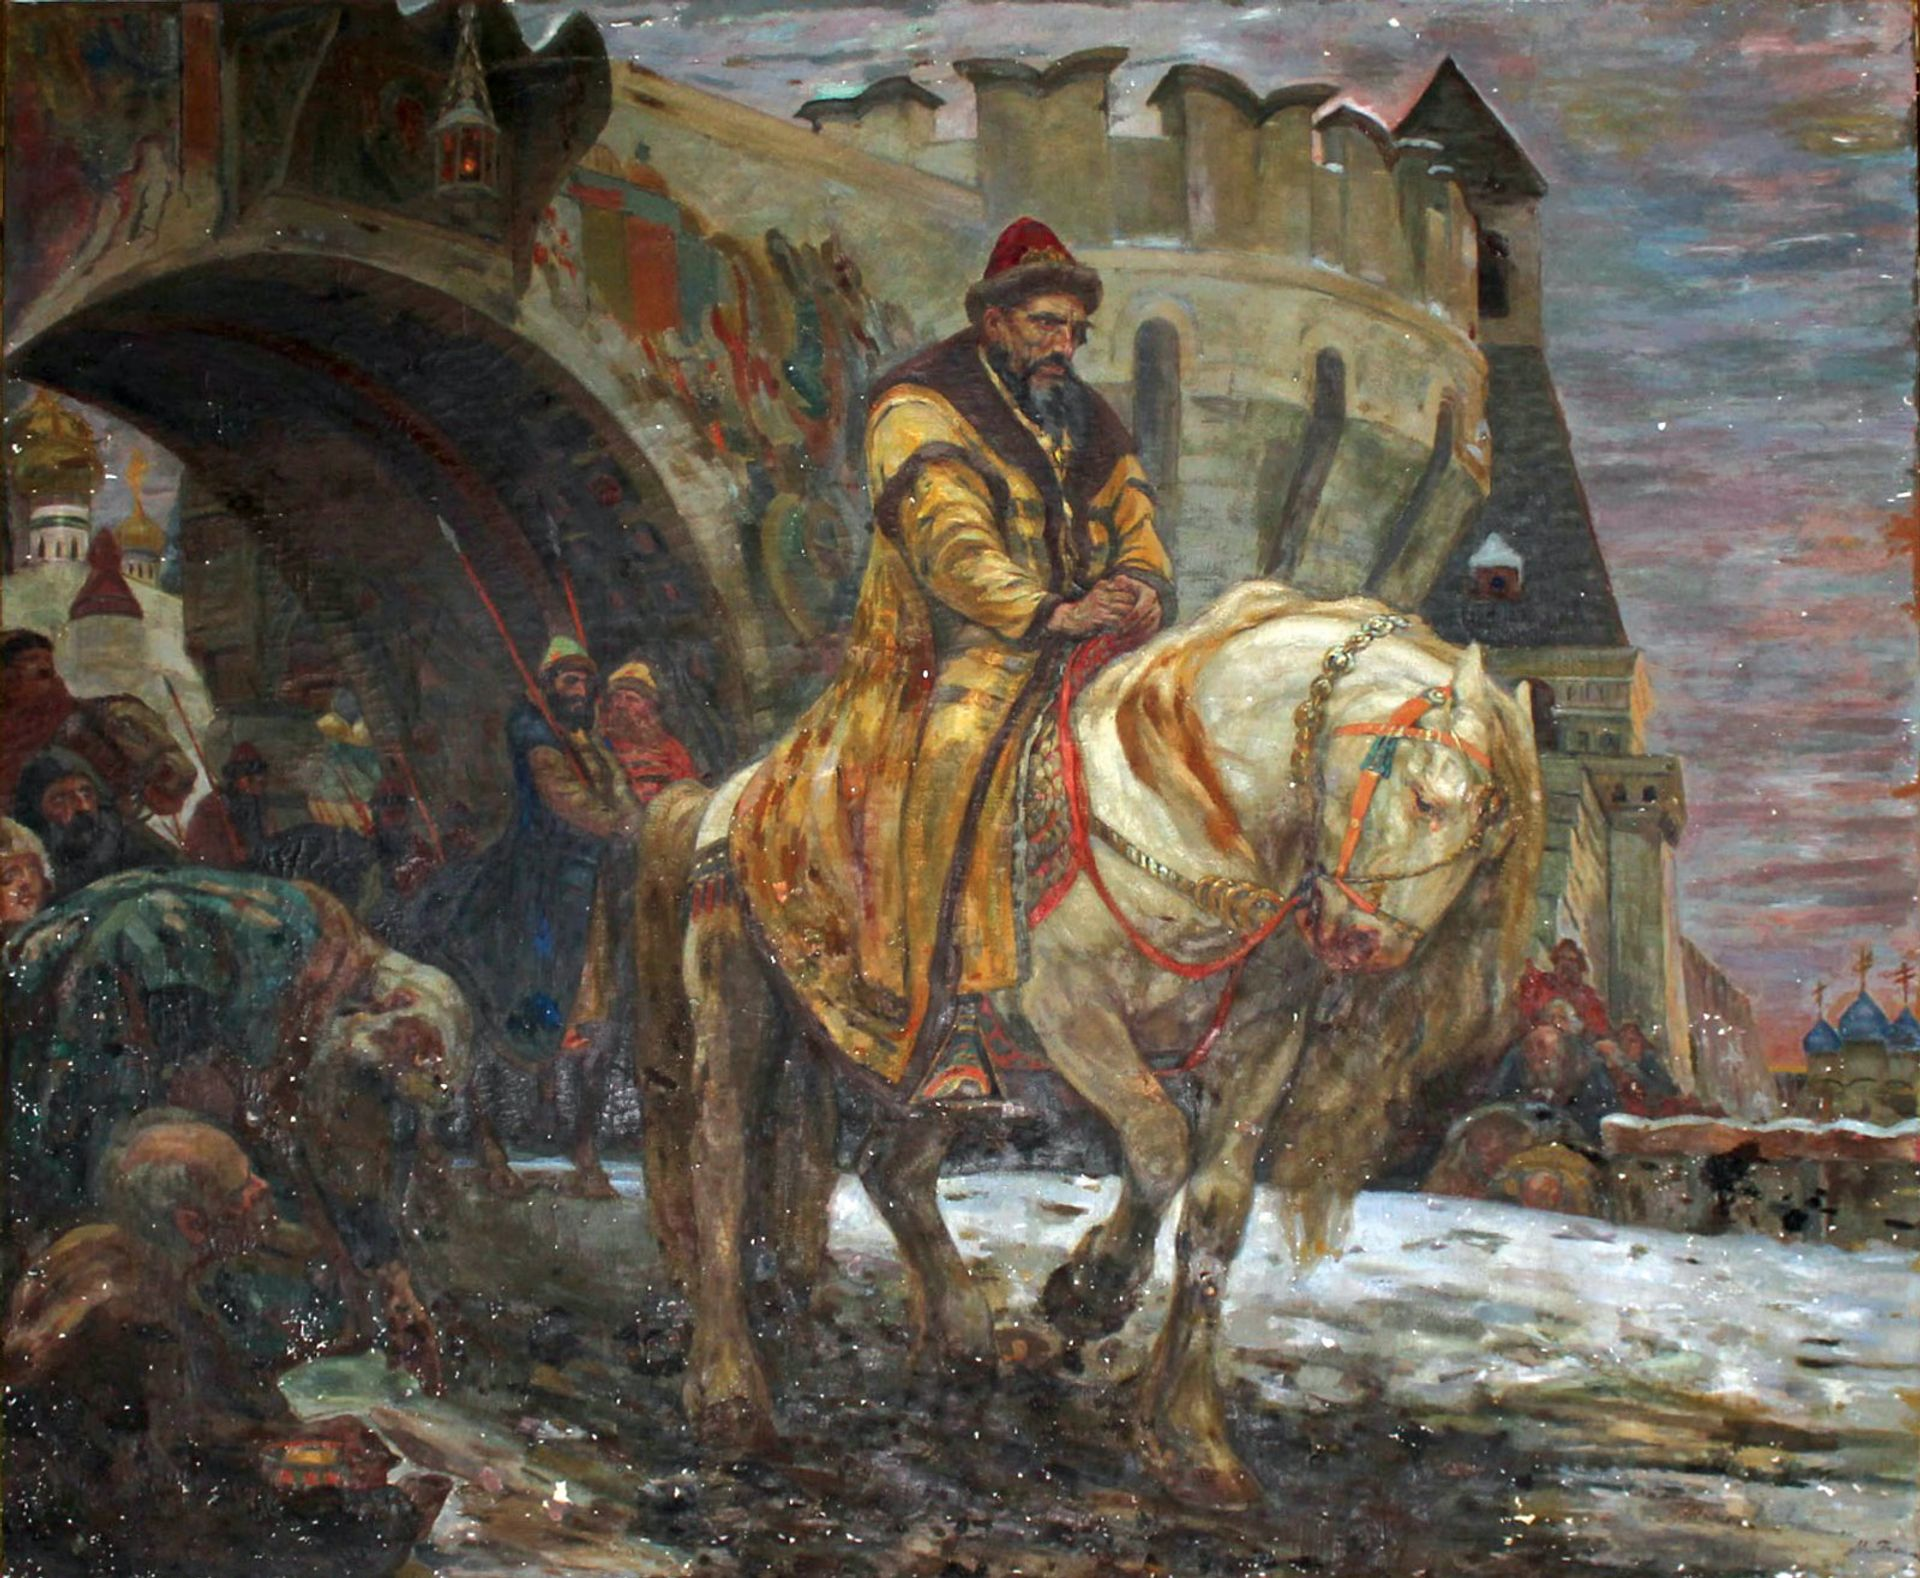 Panin's 1911 painting of Ivan the Terrible was stolen by the Nazis US Attorney's Office for the District of Columbia